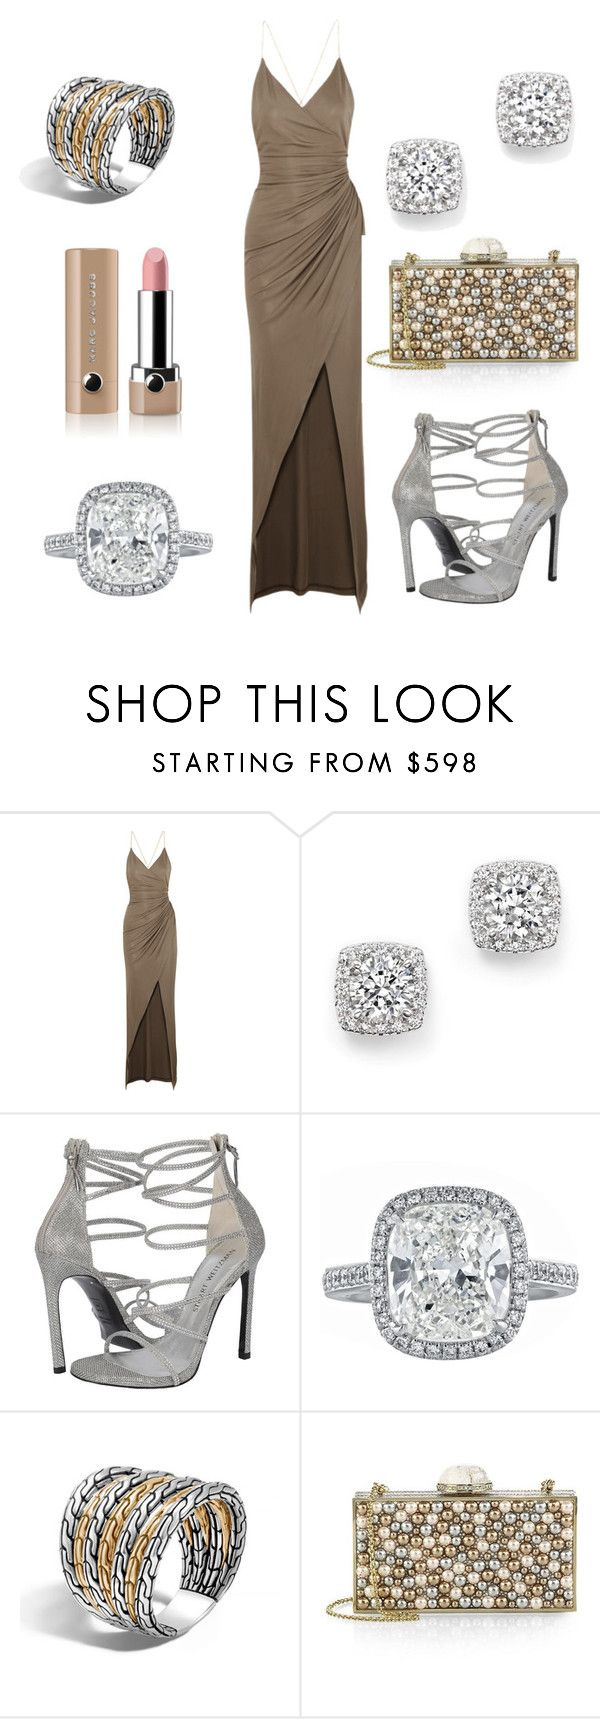 ГЛАМУР КЛУБНИКА by gala-bell on Polyvore featuring Balmain, Judith Leiber, Bloomingdale's, John Hardy, Marc Jacobs, women's clothing, women's fashion, women, female and woman